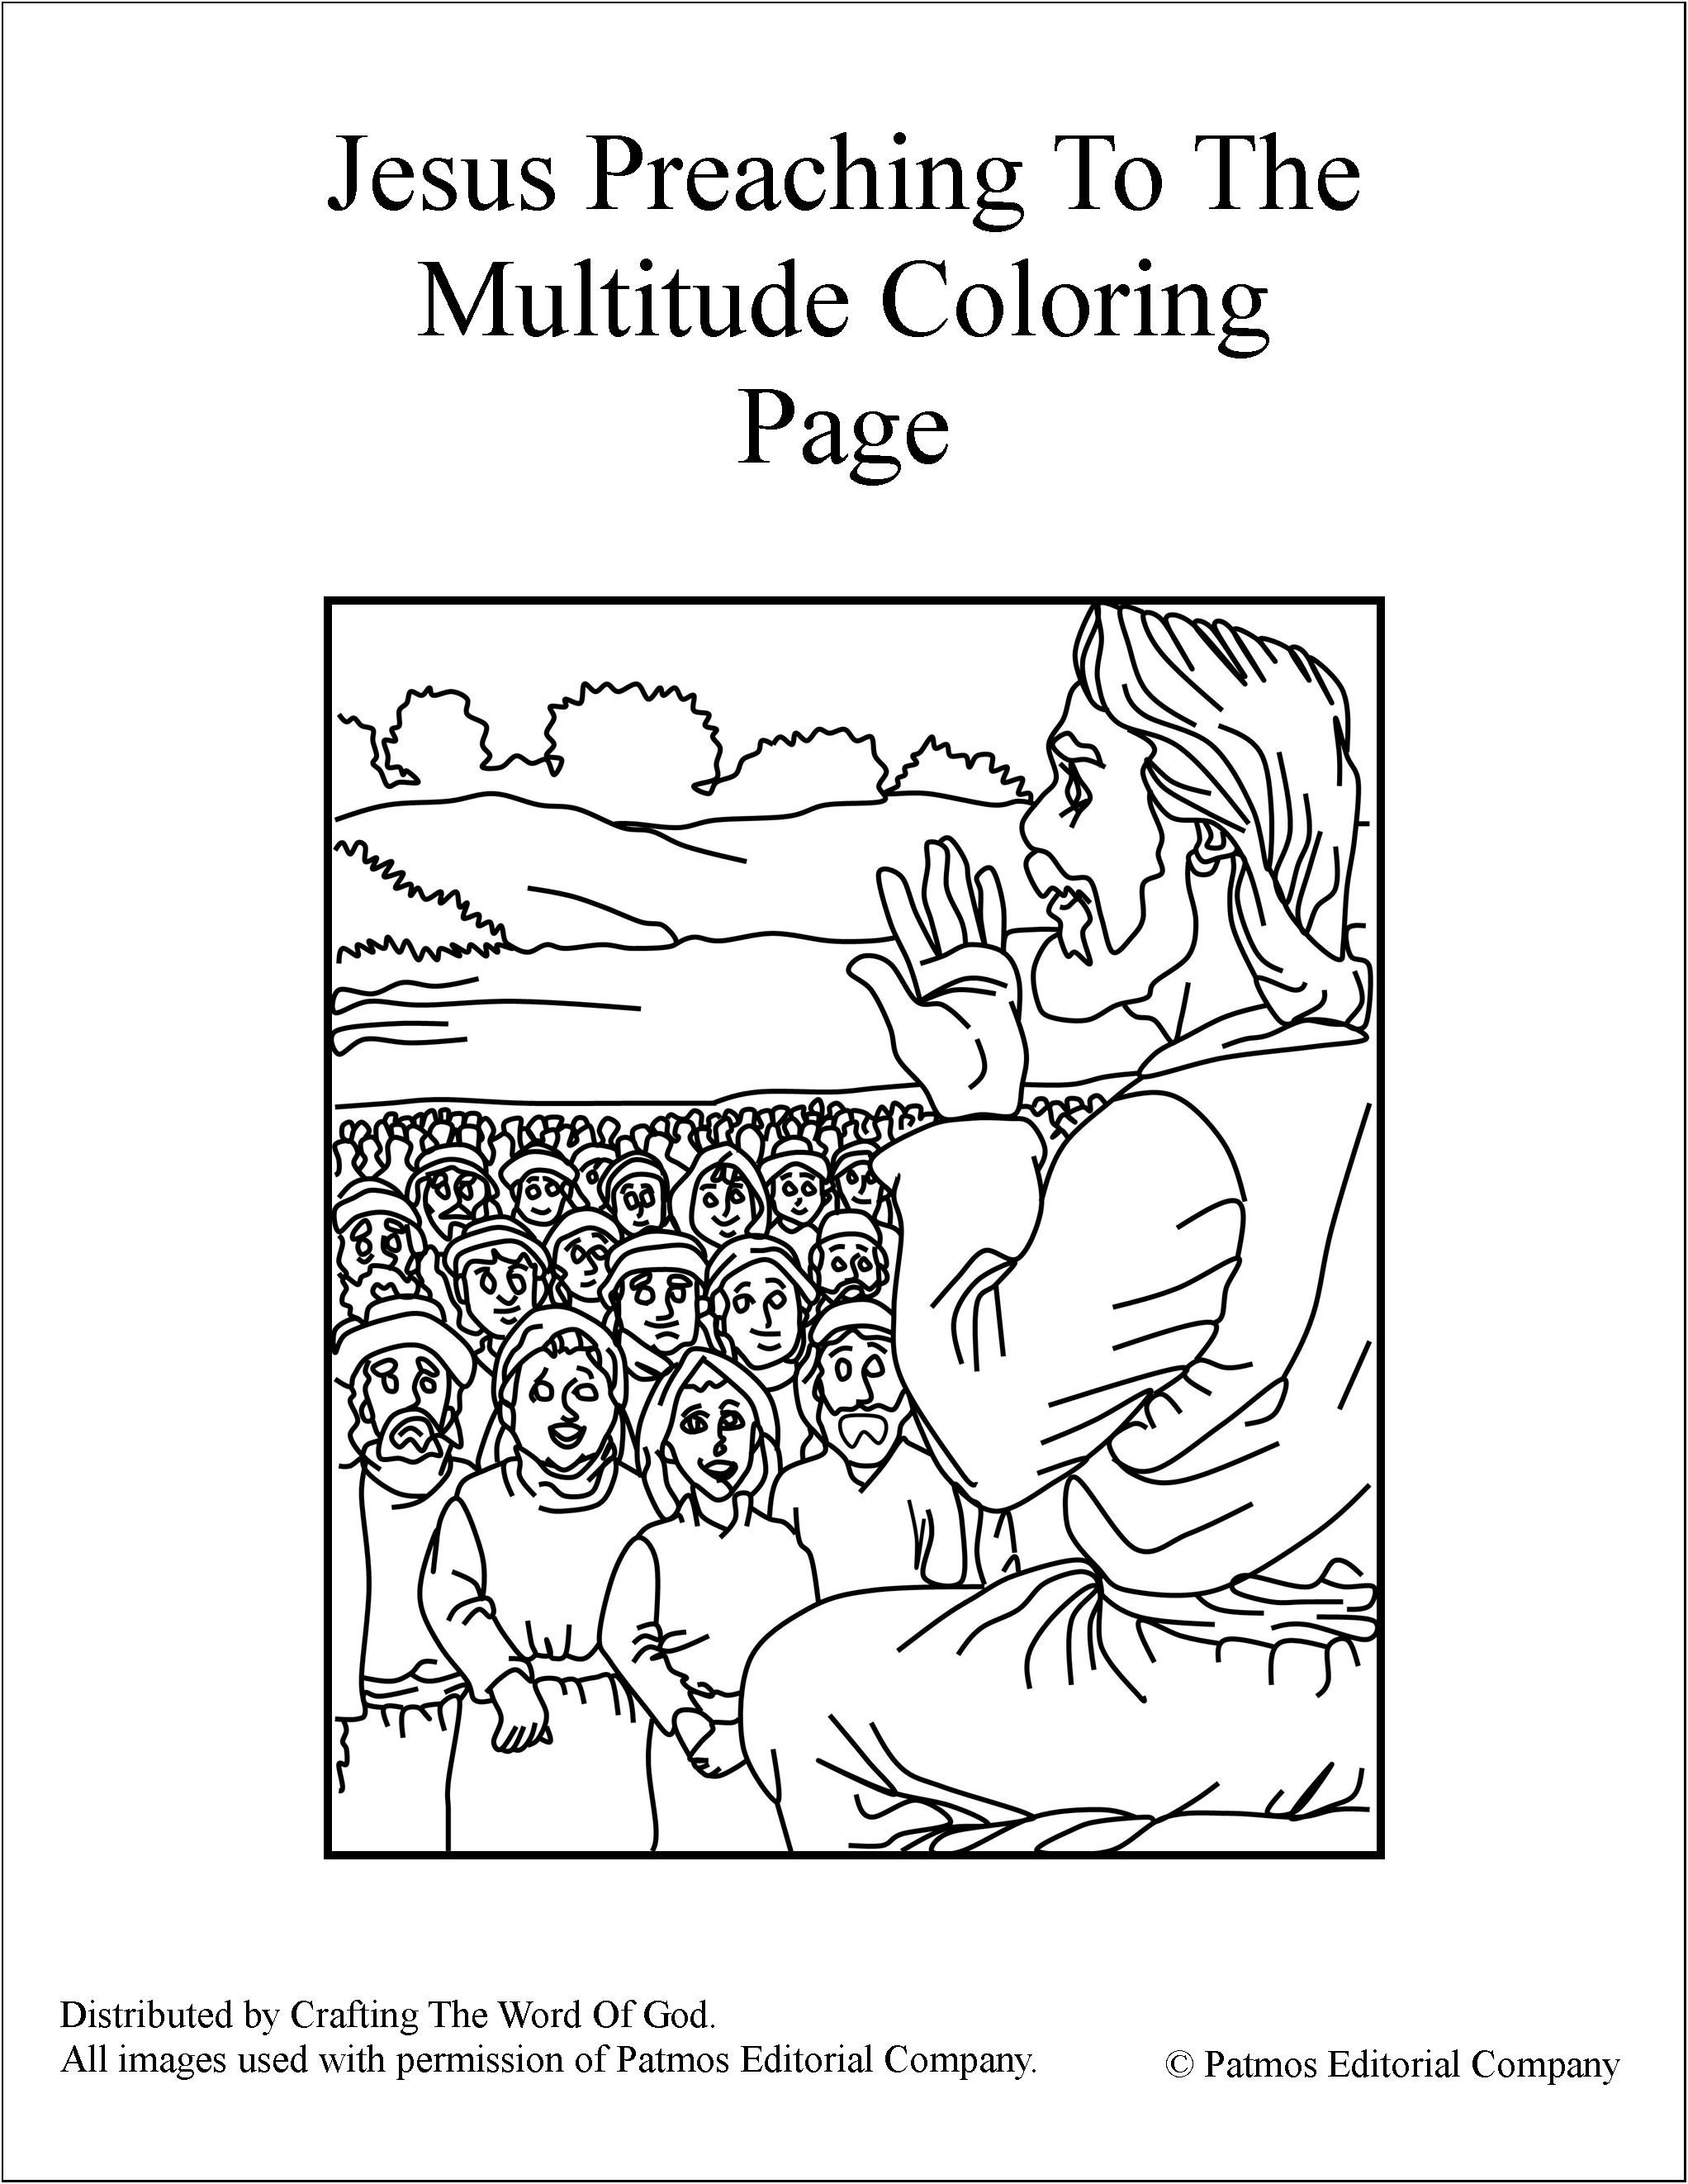 Jesus Preaching To The Multitude Coloring Page Coloring